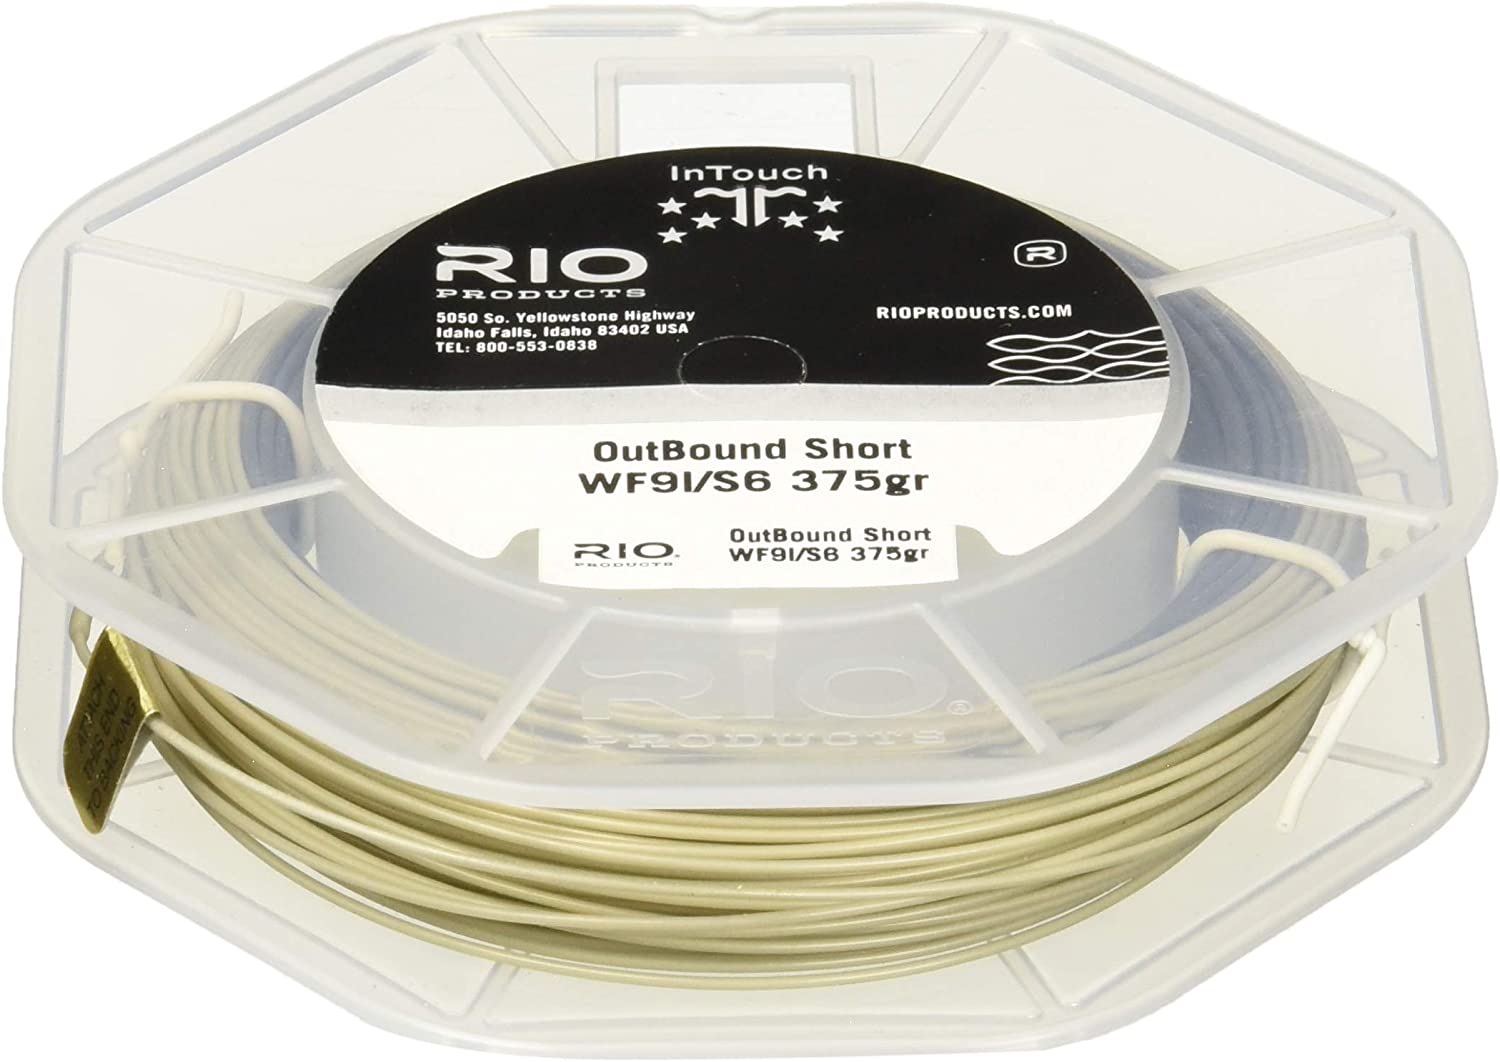 RIO Products Fly Line Intouch Outbound Short Wf8I/S3 Brow/Yellow, Brown-Yellow